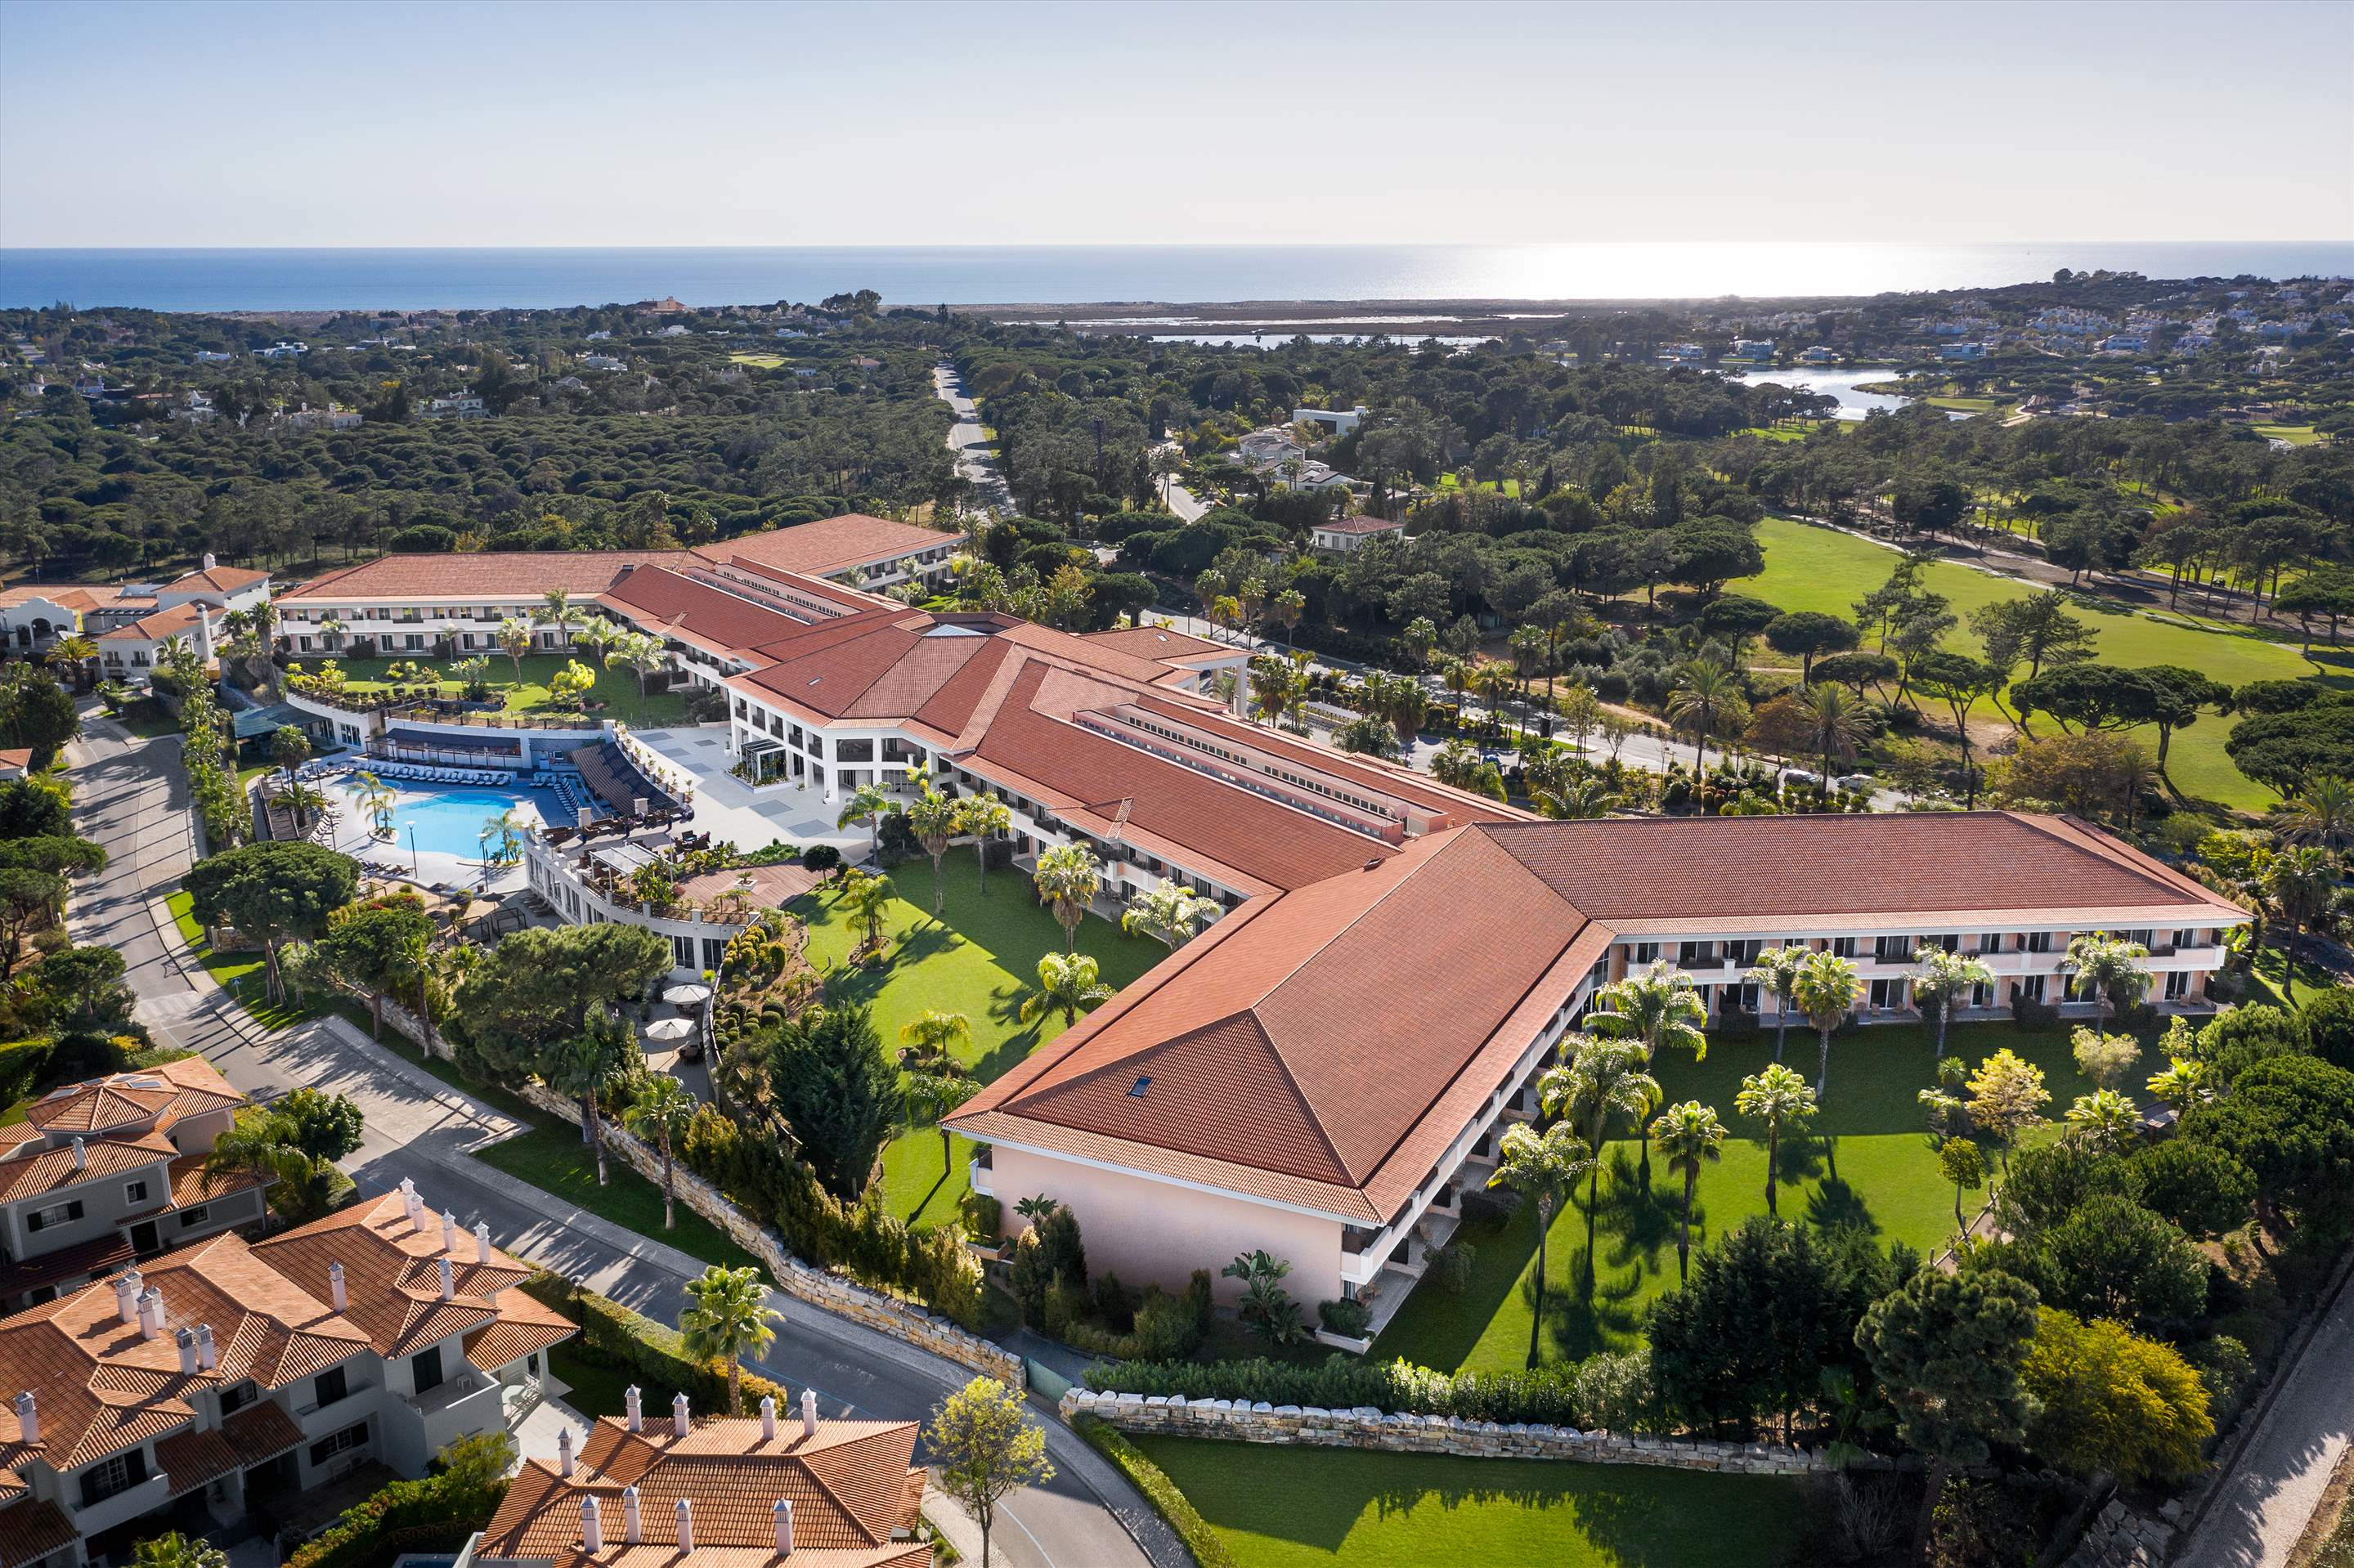 Wyndham Grand Algarve 2 Bedroom, Deluxe Family Suite, Pool Side, Room Only, 2 bedroom apartment in Wyndham Grand Algarve, Algarve Photo #33